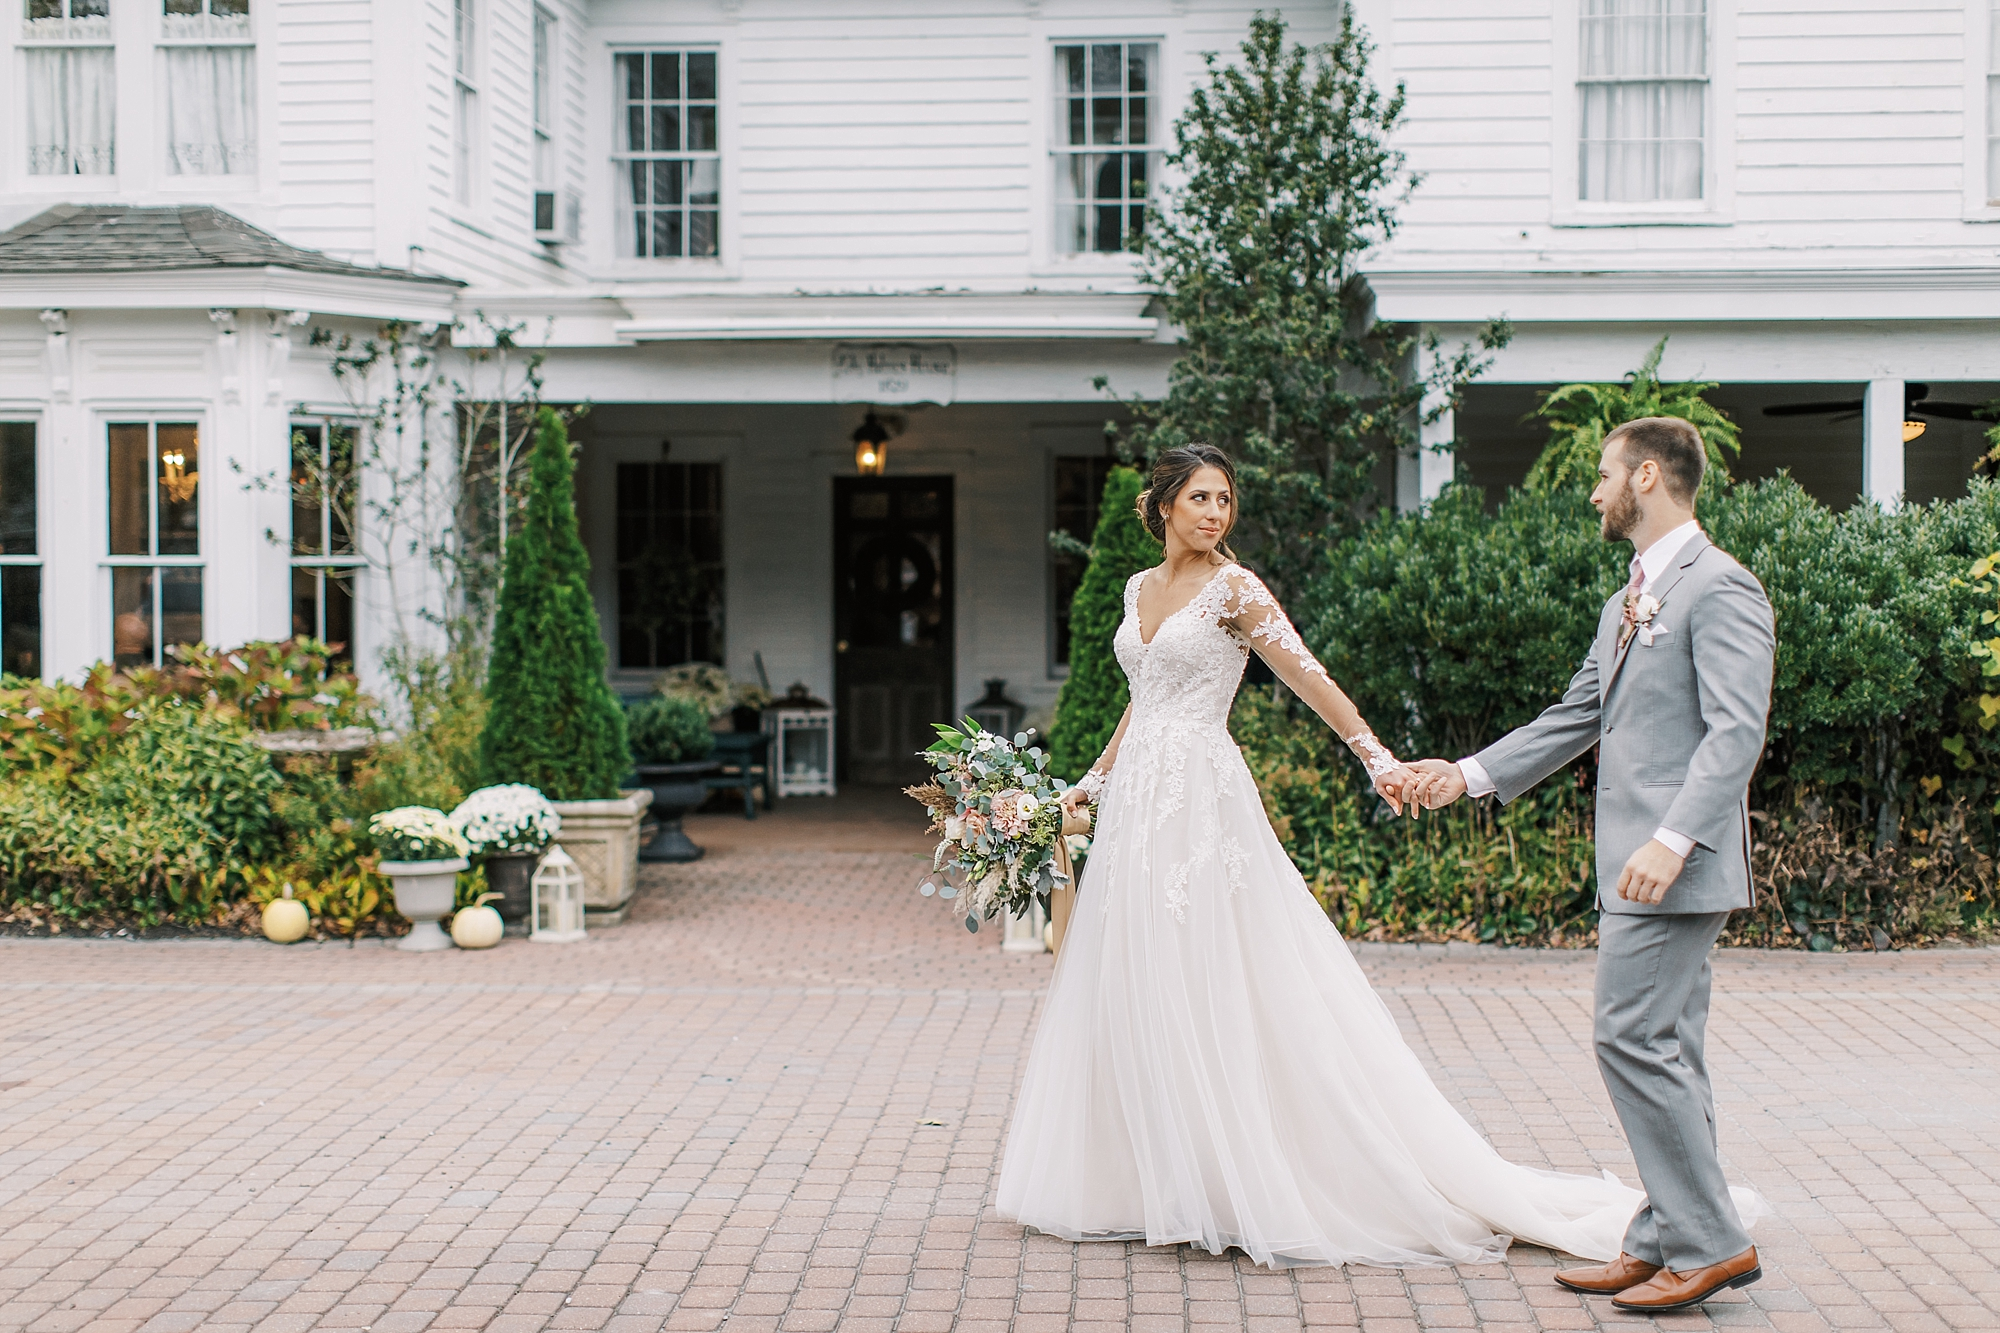 Sweet Garden Wedding Photography Abbie Holmes Estate in Cape May NJ by Magdalena Studios 0054